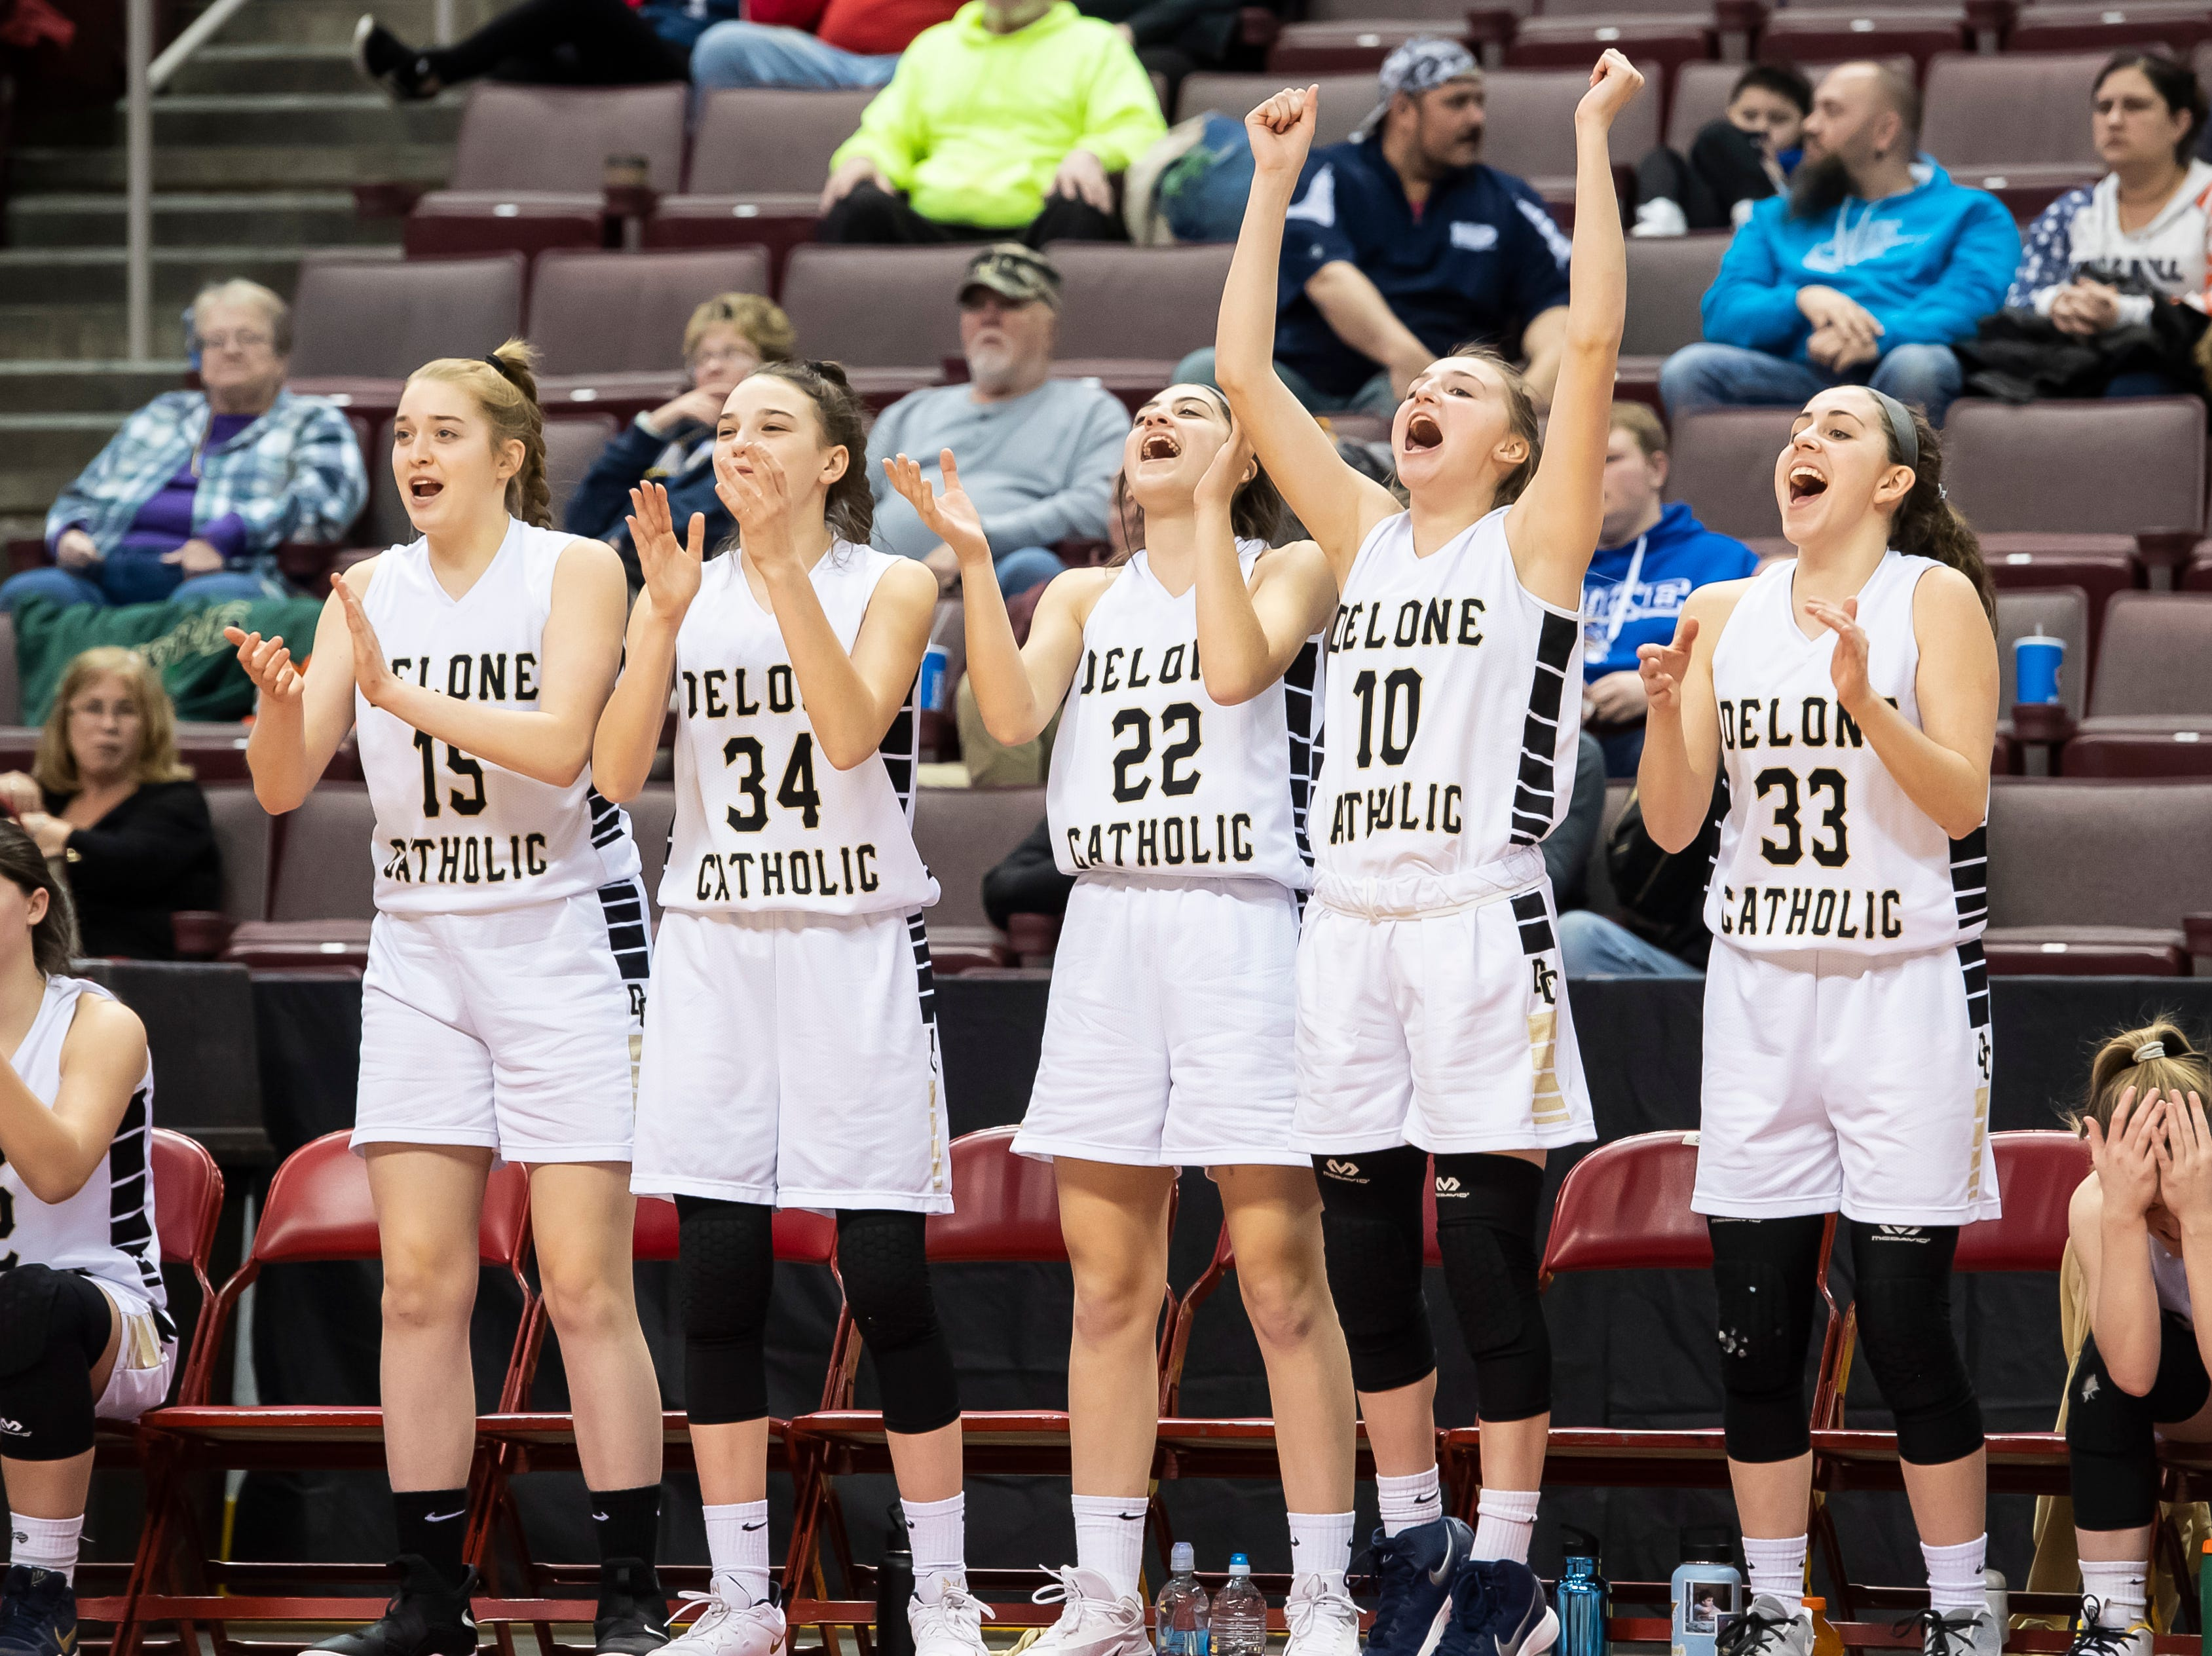 The Delone Catholic bench celebrates after the Squirettes score during the District 3 3A girls championship game against Trinity at the Giant Center in Hershey Wednesday, Feb. 27, 2019. The Squirettes fell 44-33.